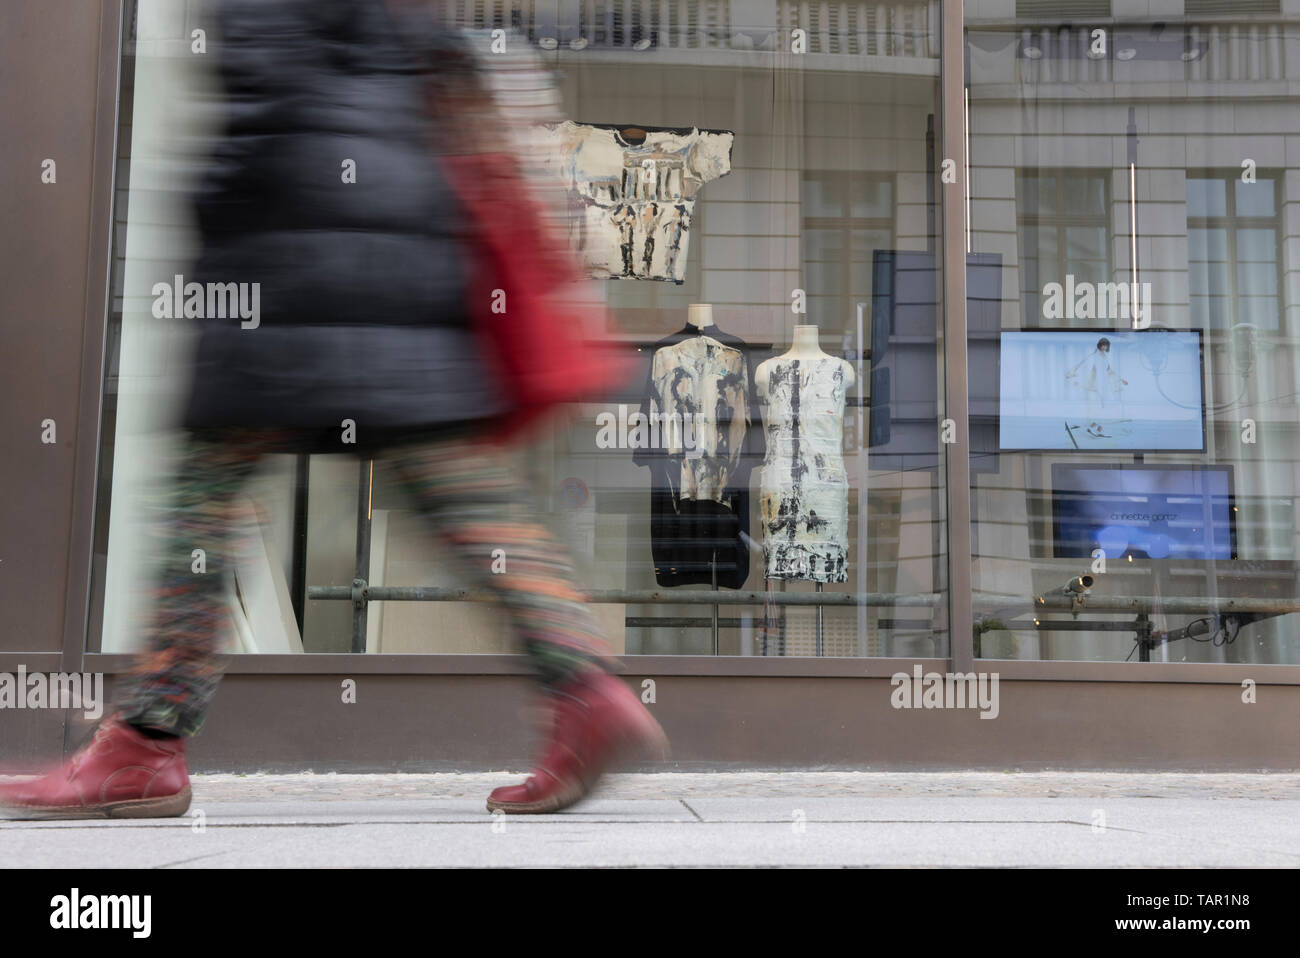 Berlin, Germany  05th May, 2019  A woman walks past a